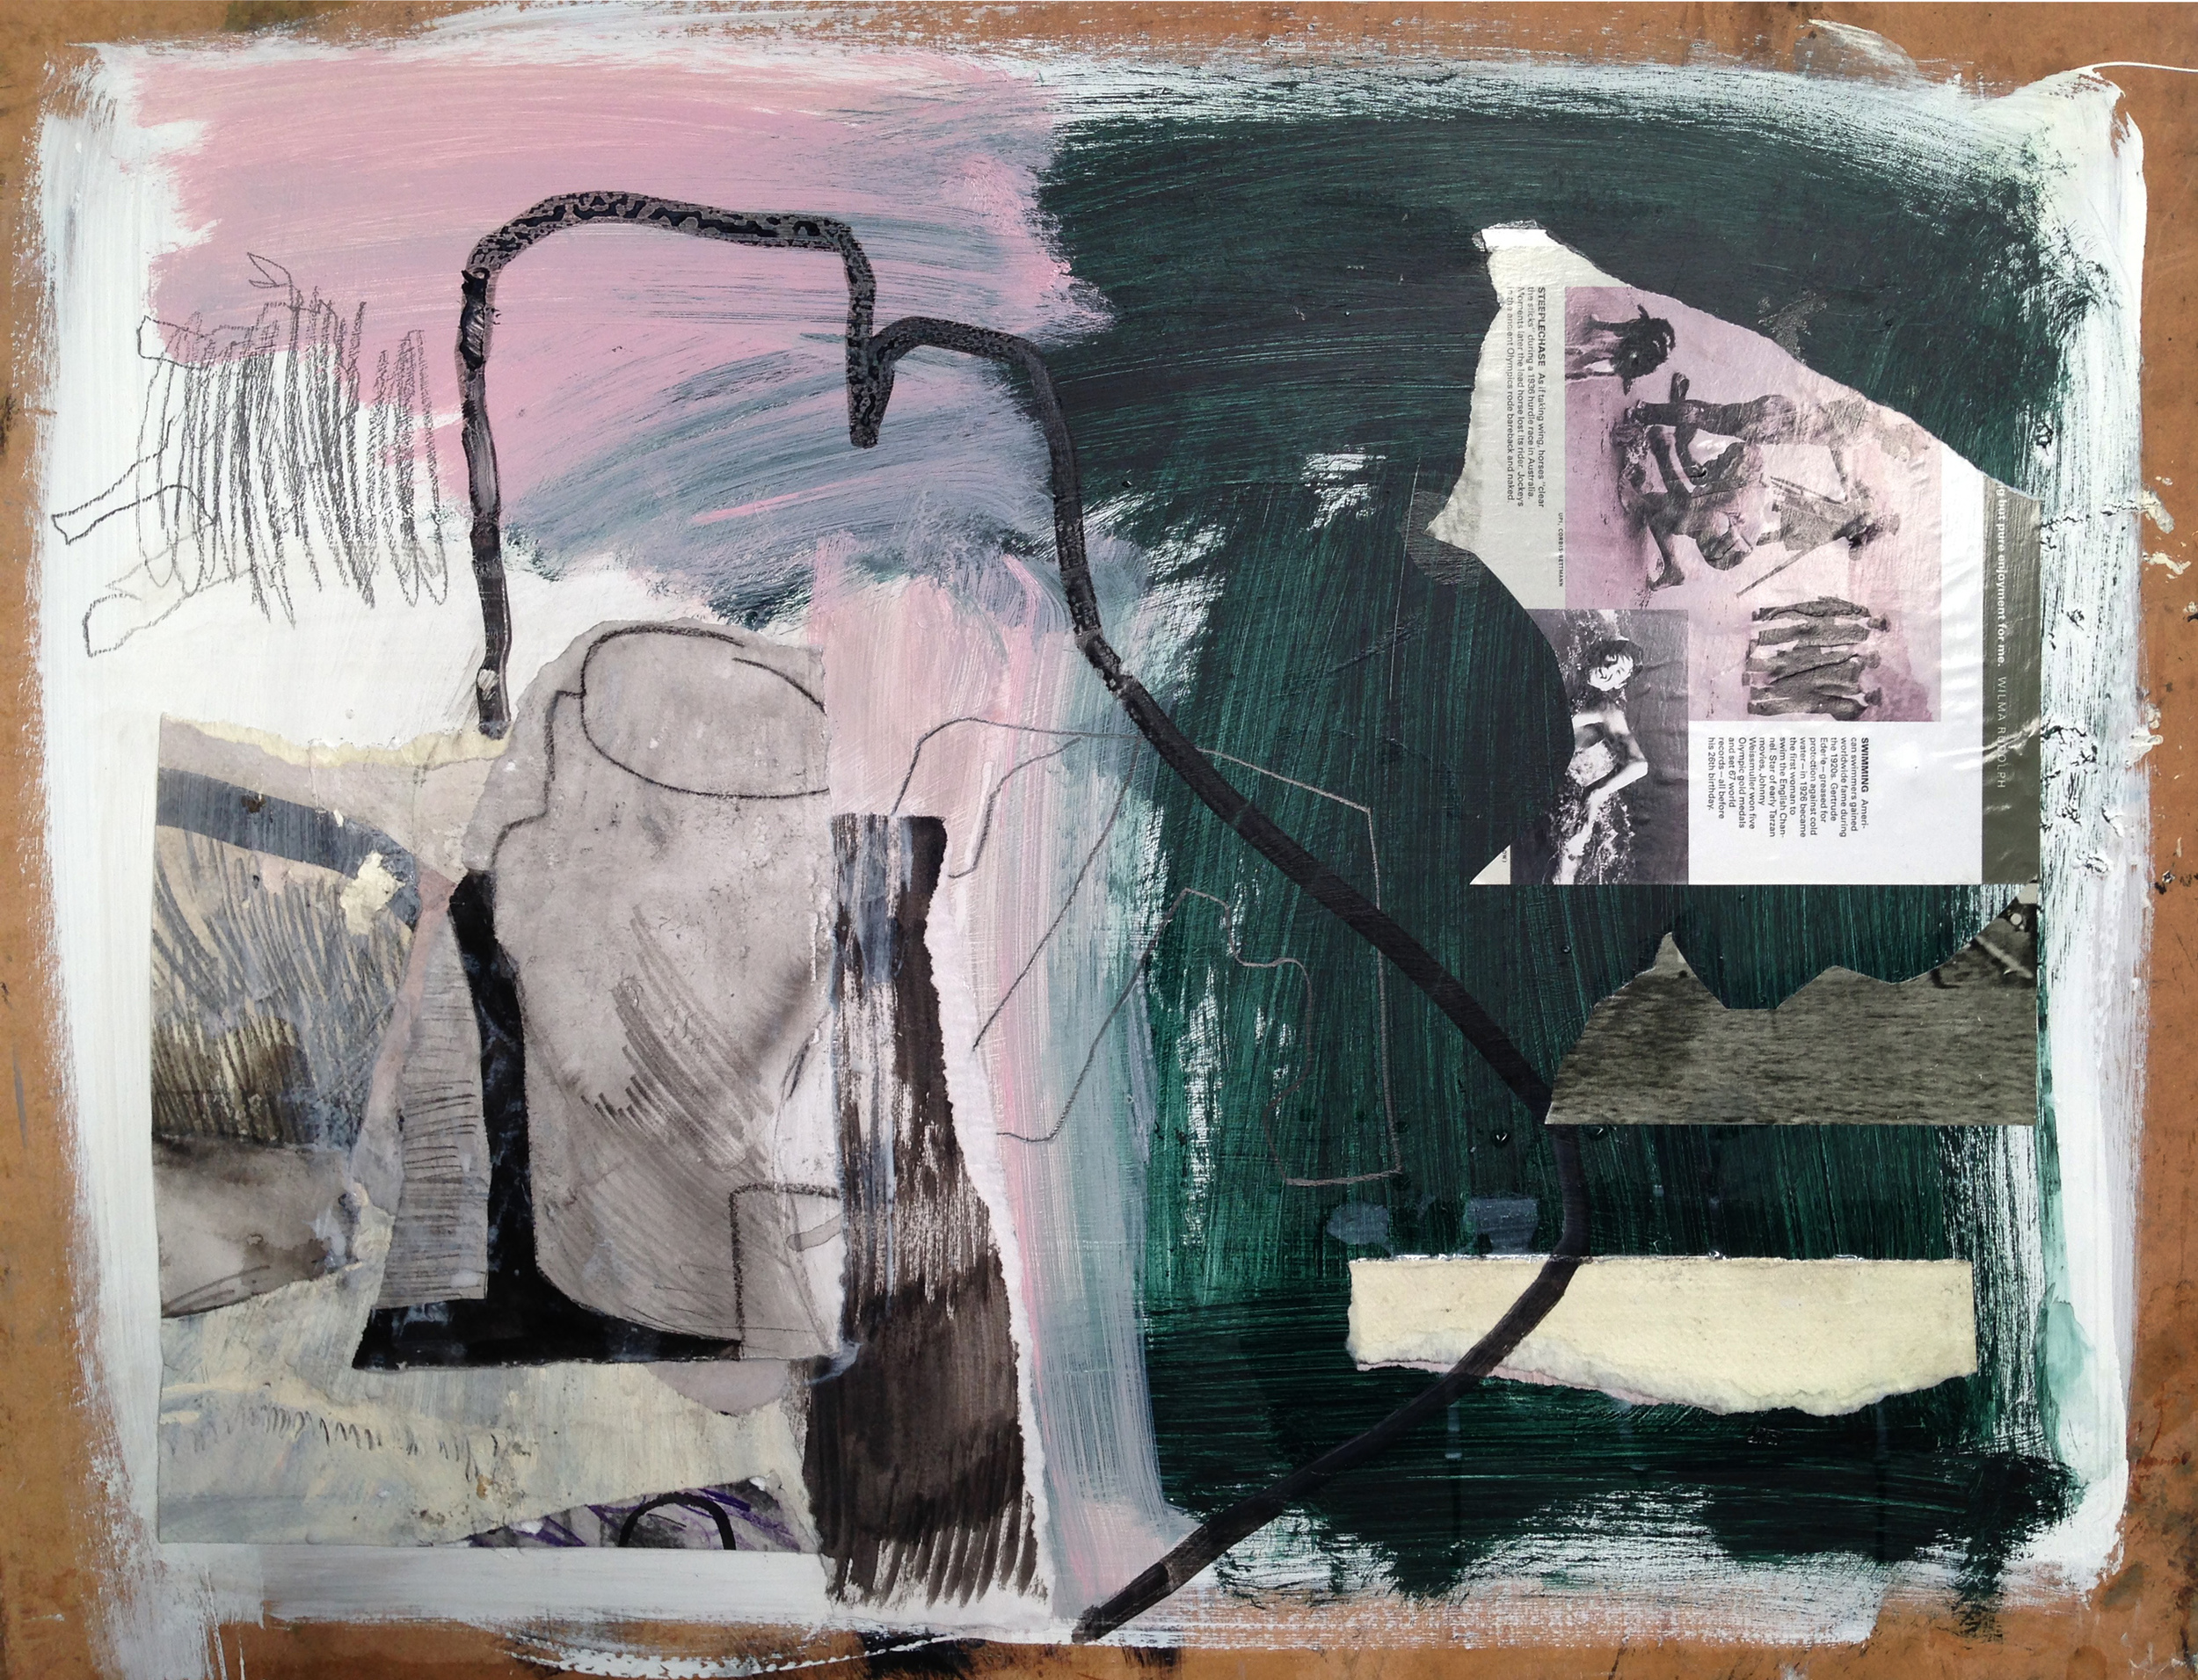 Inspired by the work of Robert Rauschenberg (who I had not heard of, but am now a huge fan of)this one was also pulled together very quickly. Paint, collage, ink, graphite on board.